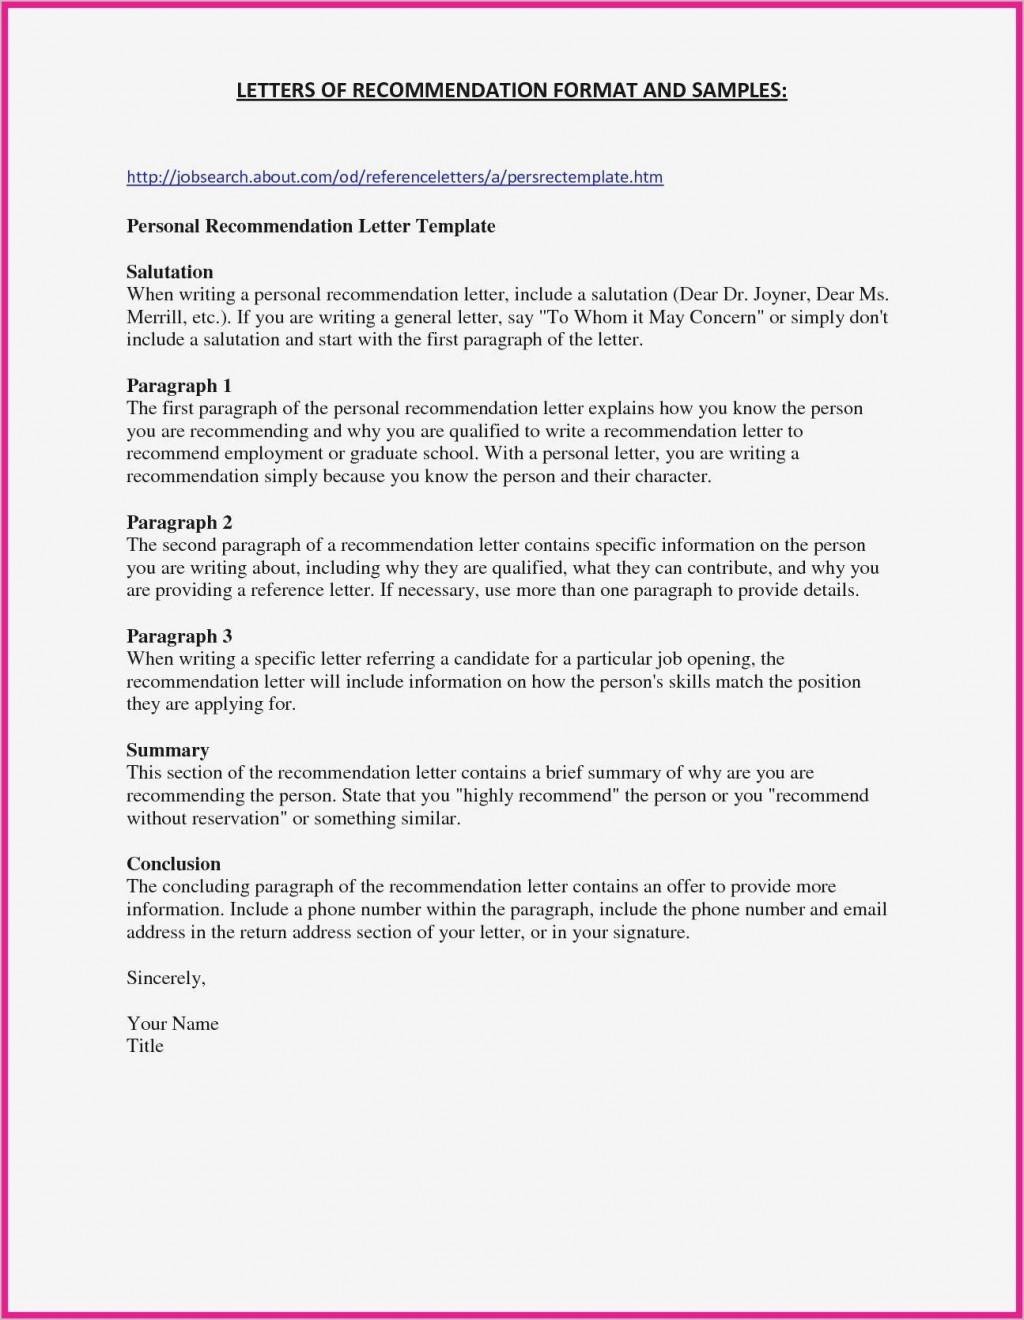 001 Remarkable Personal Letter Of Recommendation Template High Resolution  Sample Character Reference AssistantLarge